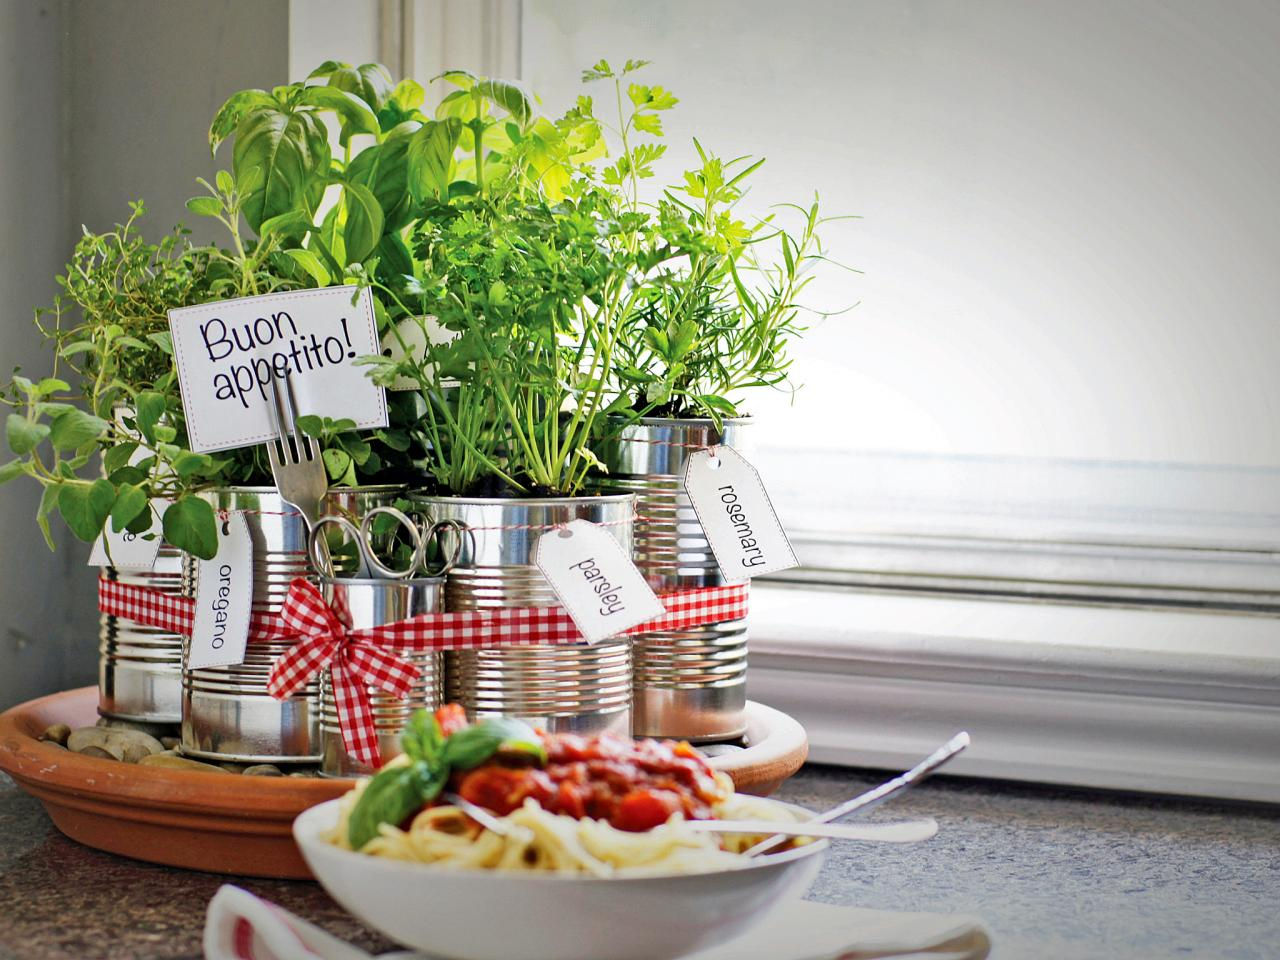 Herb Garden Ideas Designs 5 indoor herb garden ideas | hgtv's decorating & design blog | hgtv